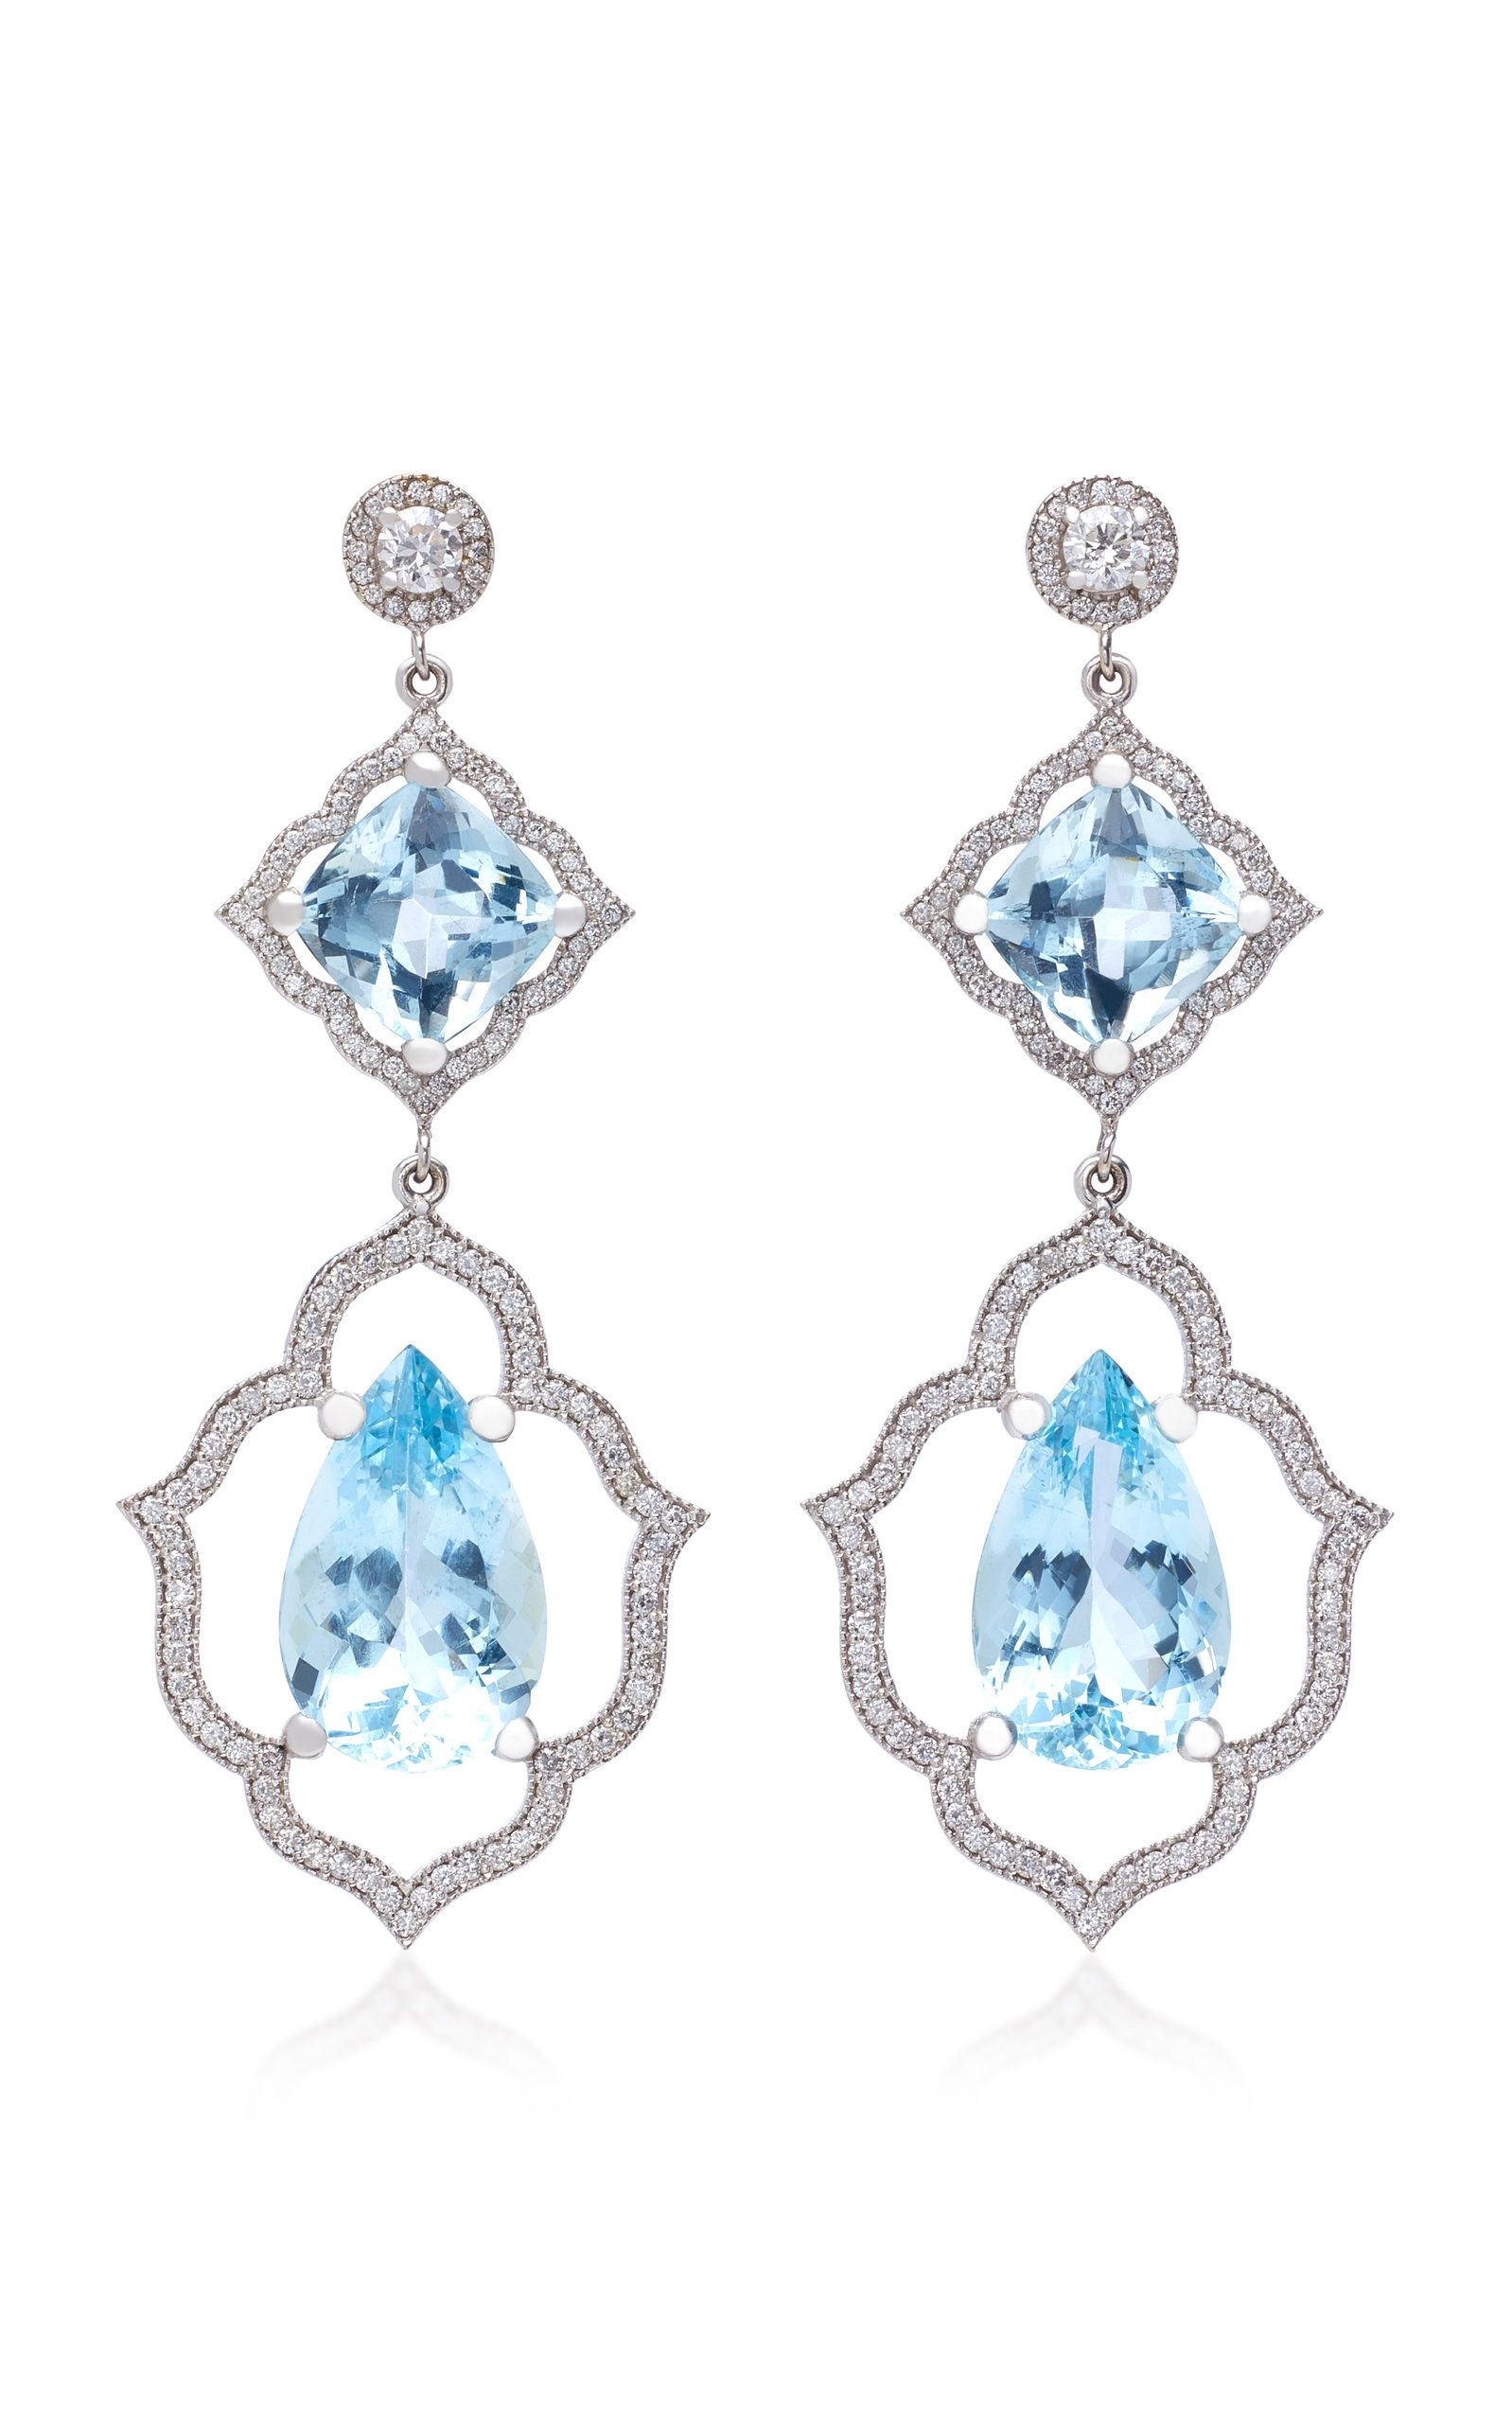 a3c3bfd55edc1c Click Product to Zoom VIEW IN PERSON Sara Weinstock 18K White Gold,  Aquamarine And Diamond Earrings ColorBlue $32,805